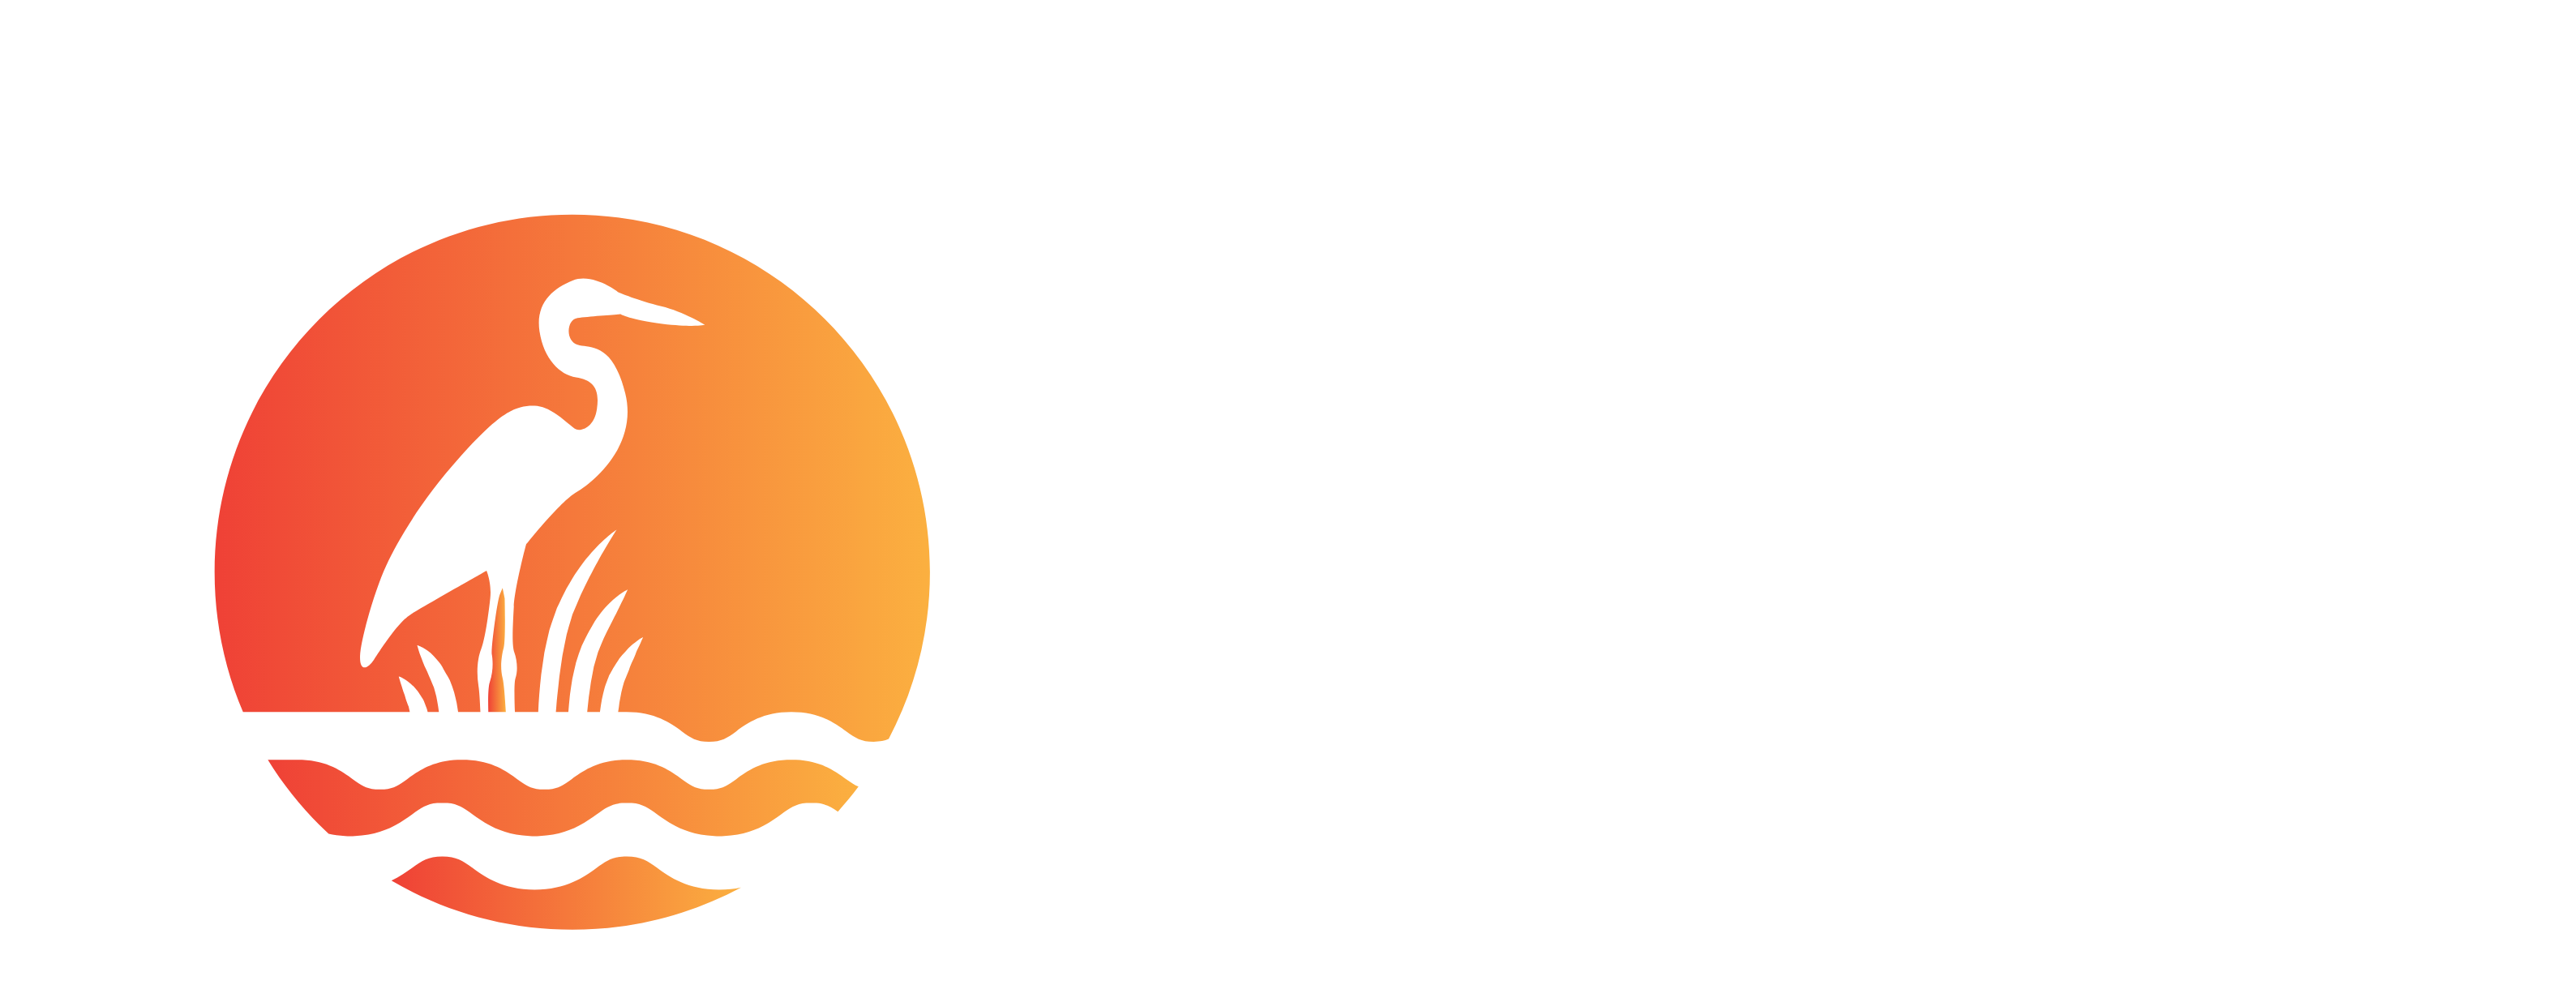 Durbin Creek Insurance